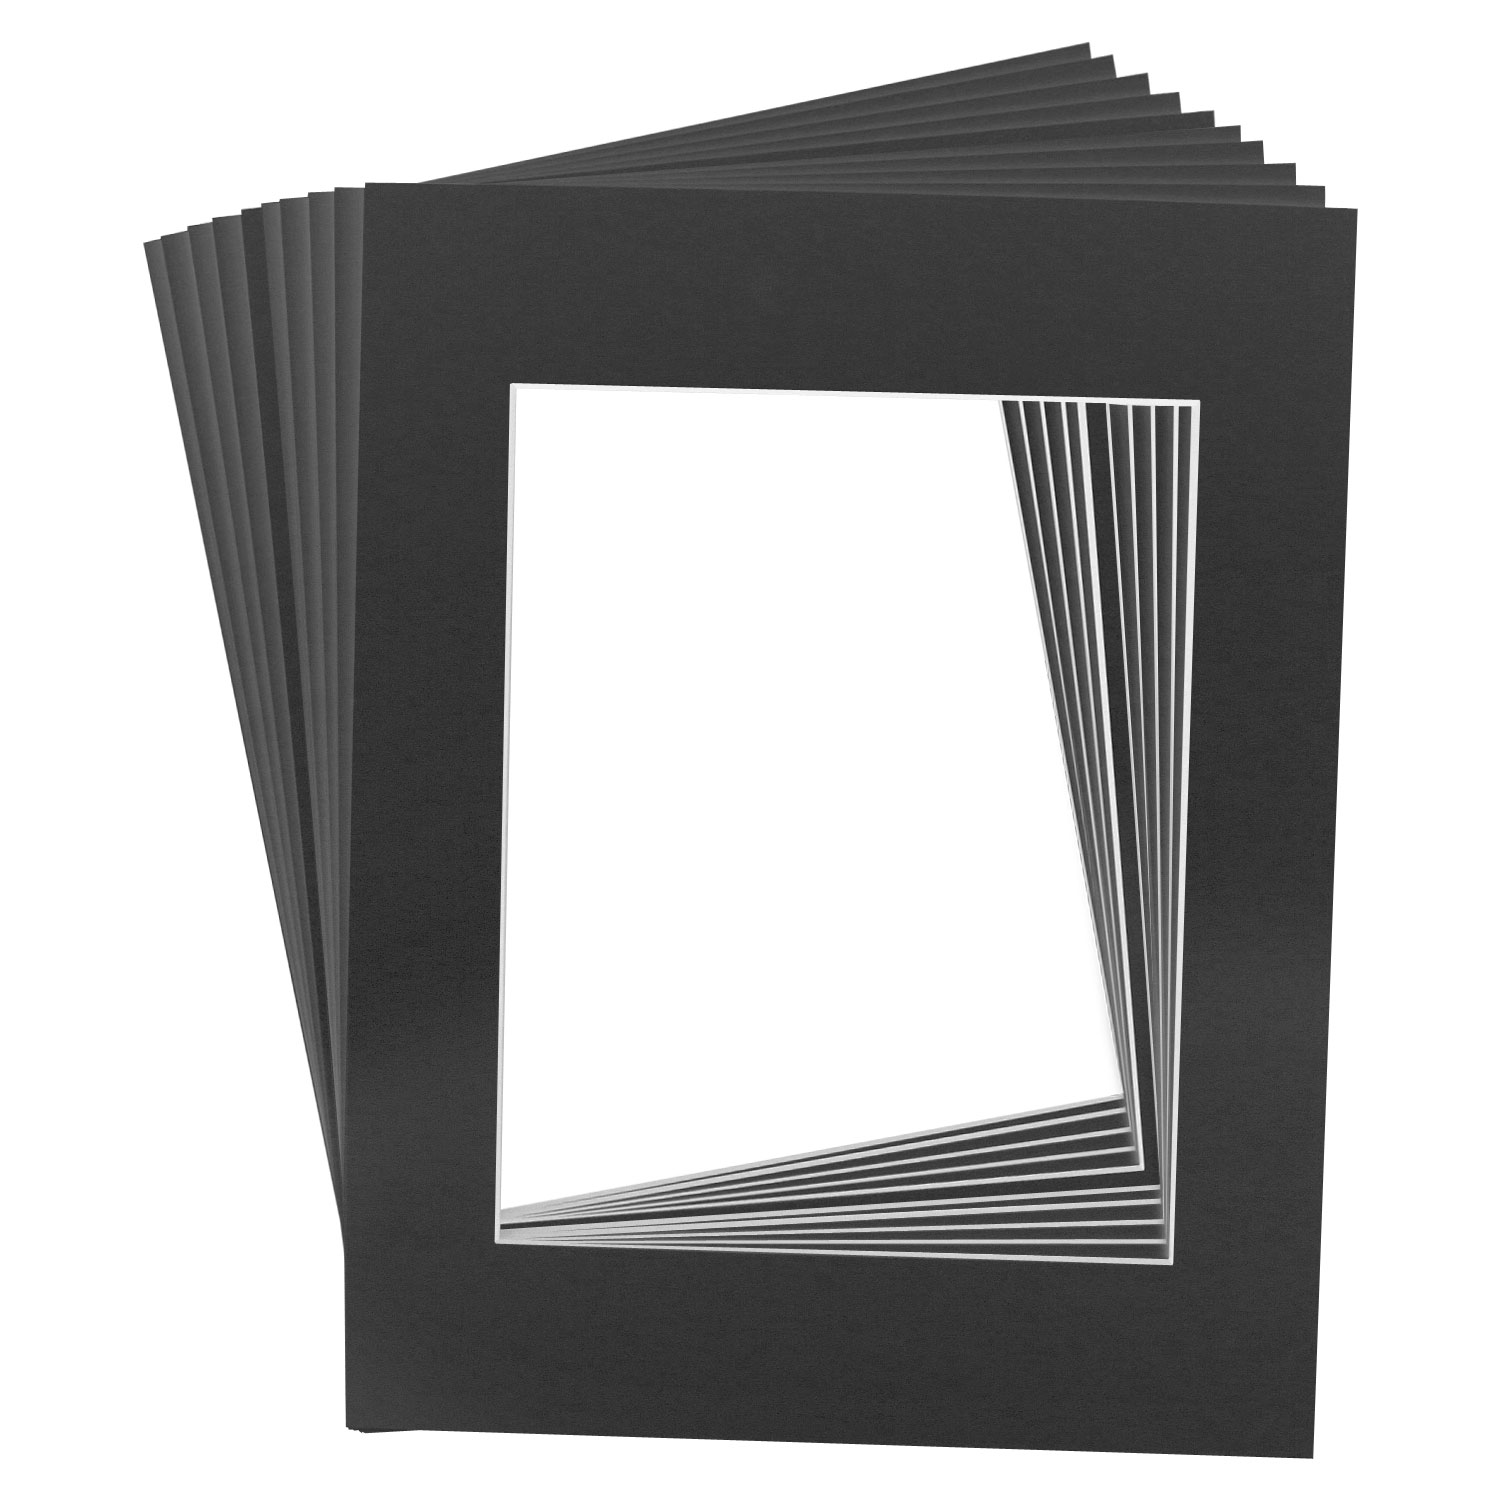 10 Art Mats Premier Quality Acid-Free Pre-Cut 11x14 Black Picture ...